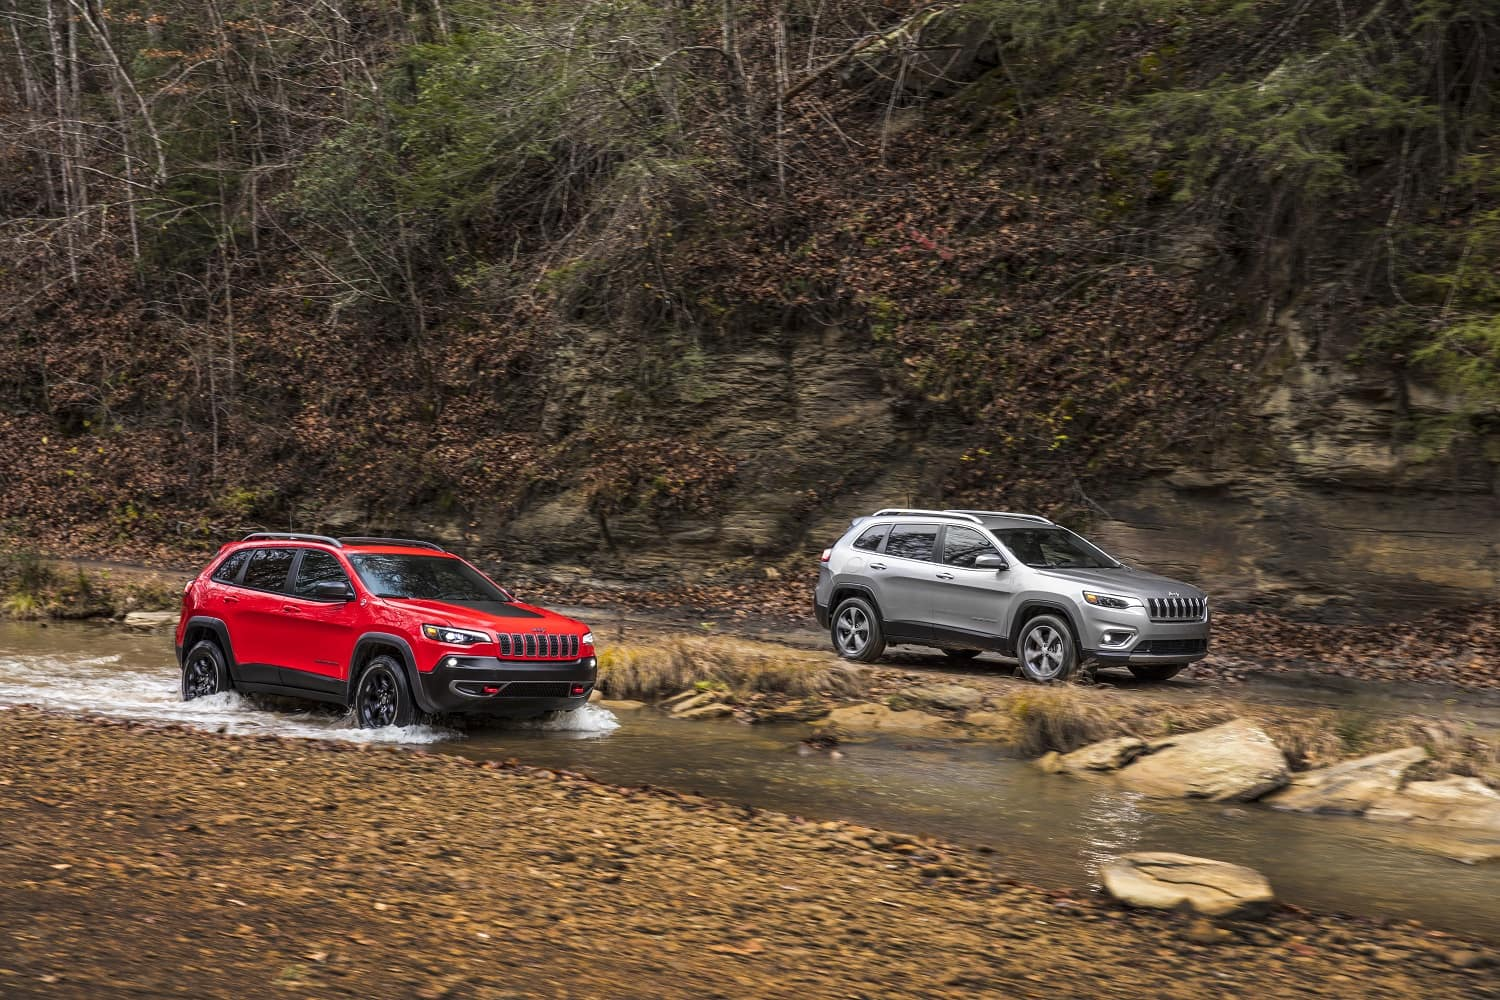 Jeep Cherokee Safety Technology